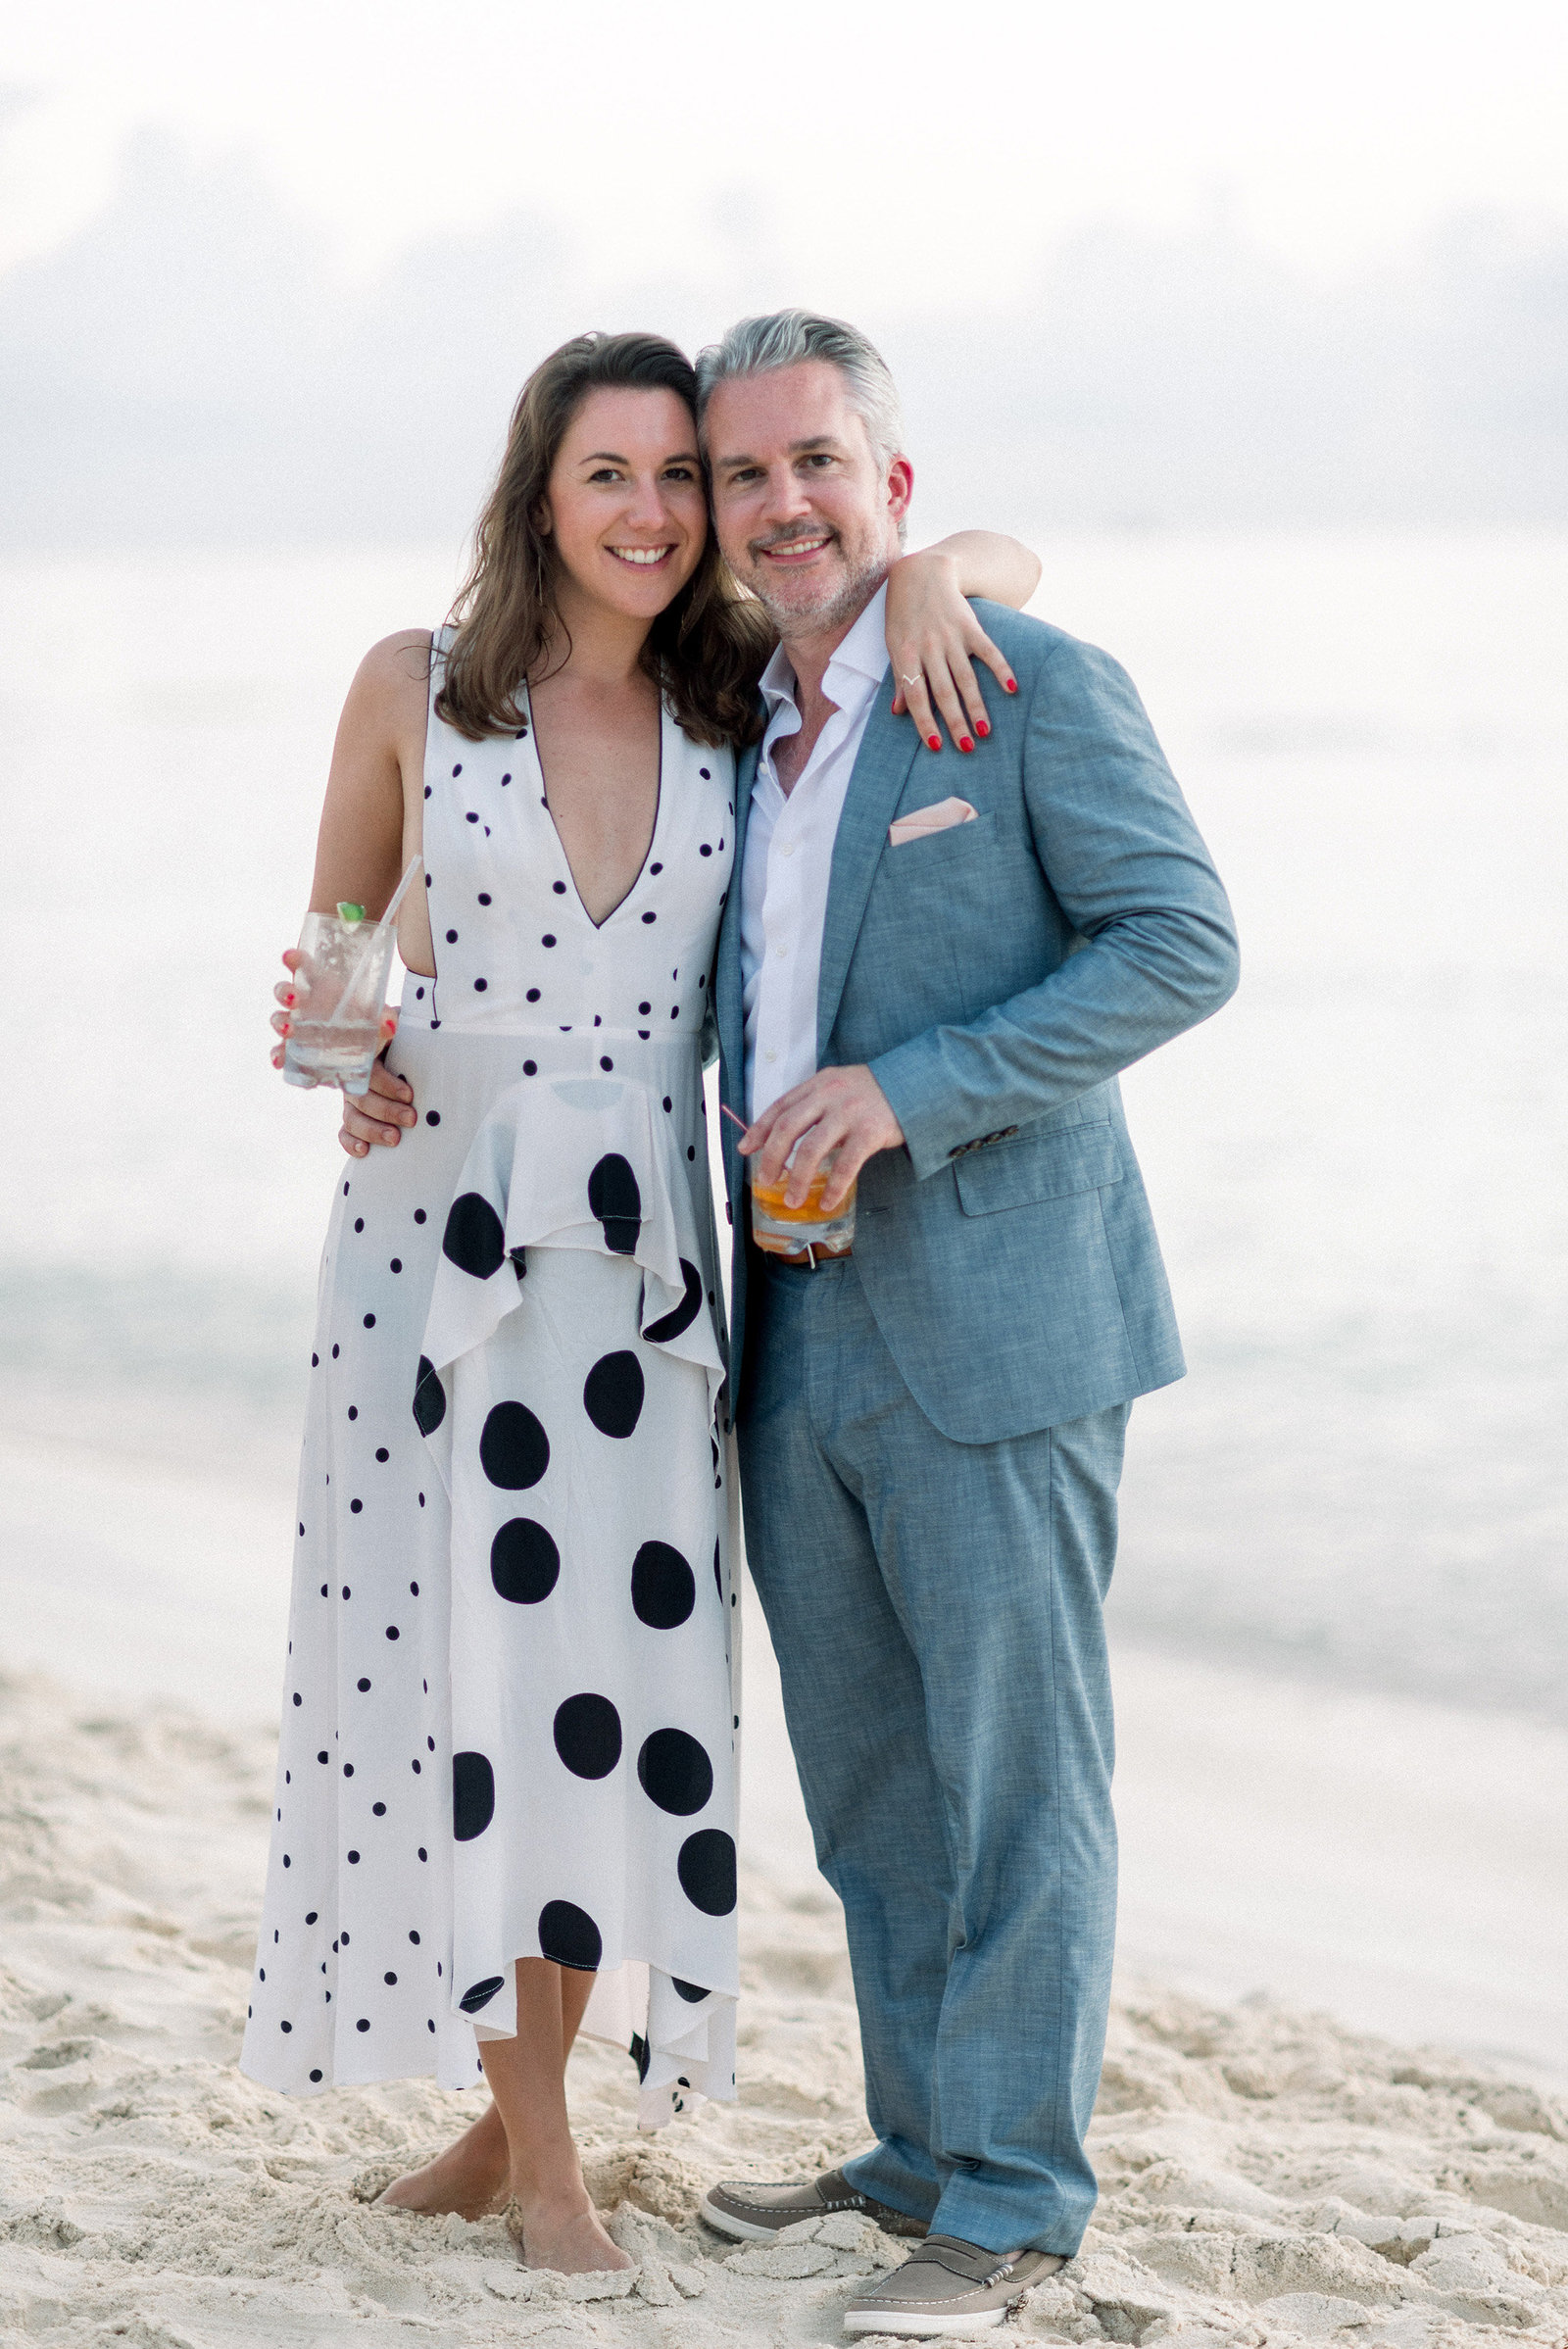 20180512-Pura-Soul-Photo-Ritz-Grand-Cayman-Wedding-129